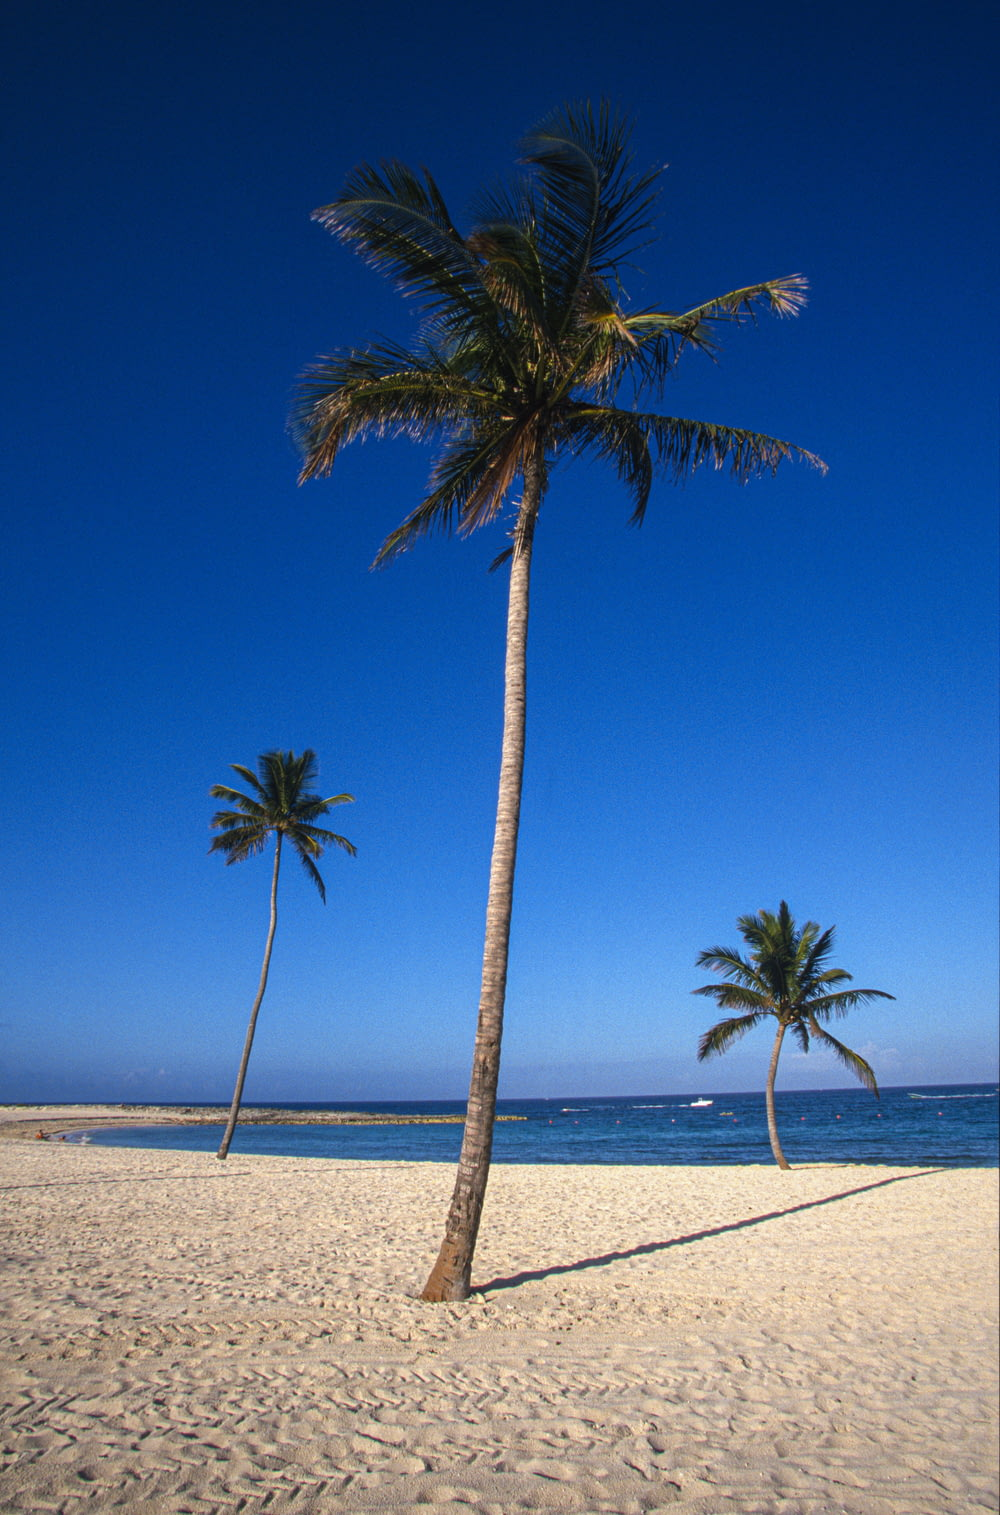 palm tree on white sand beach during daytime